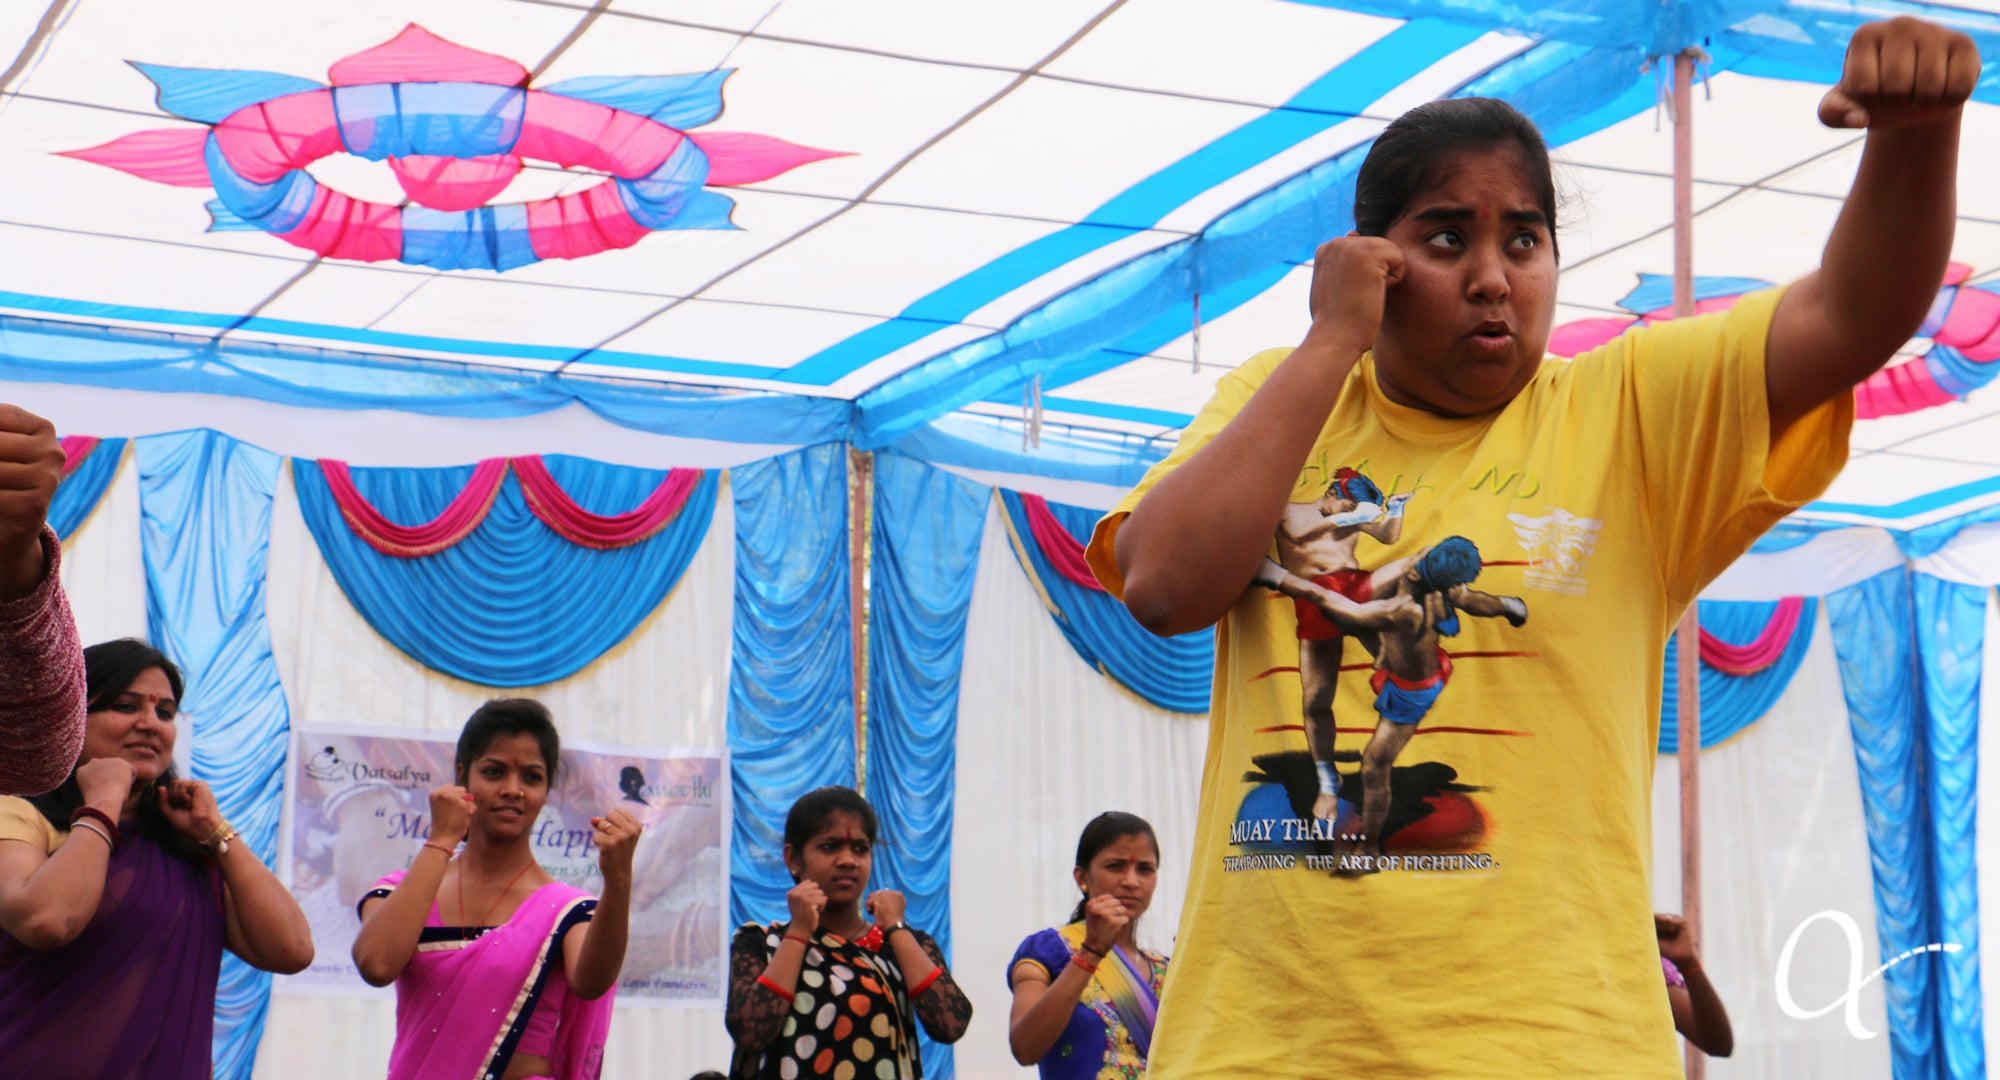 Richa Gaur leads a self-defense workshop with Anchal artisans